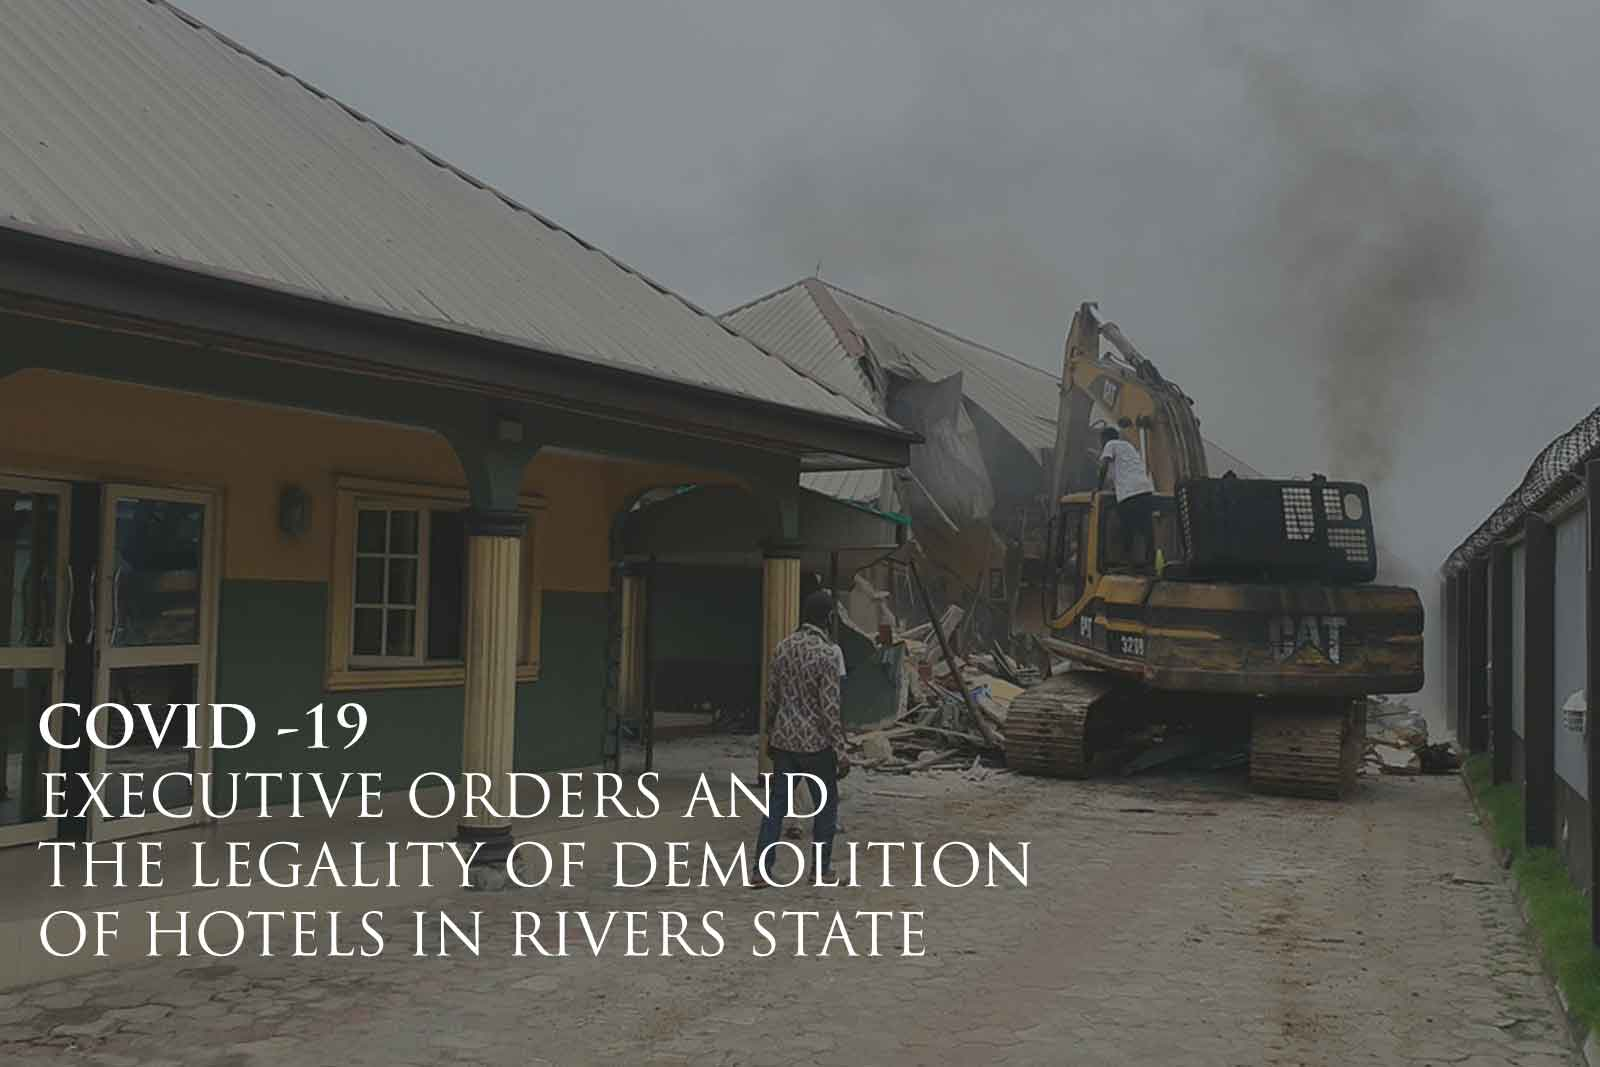 COVID -19, EXECUTIVE ORDERS AND THE LEGALITY OF DEMOLITION OF HOTELS IN RIVERS STATE